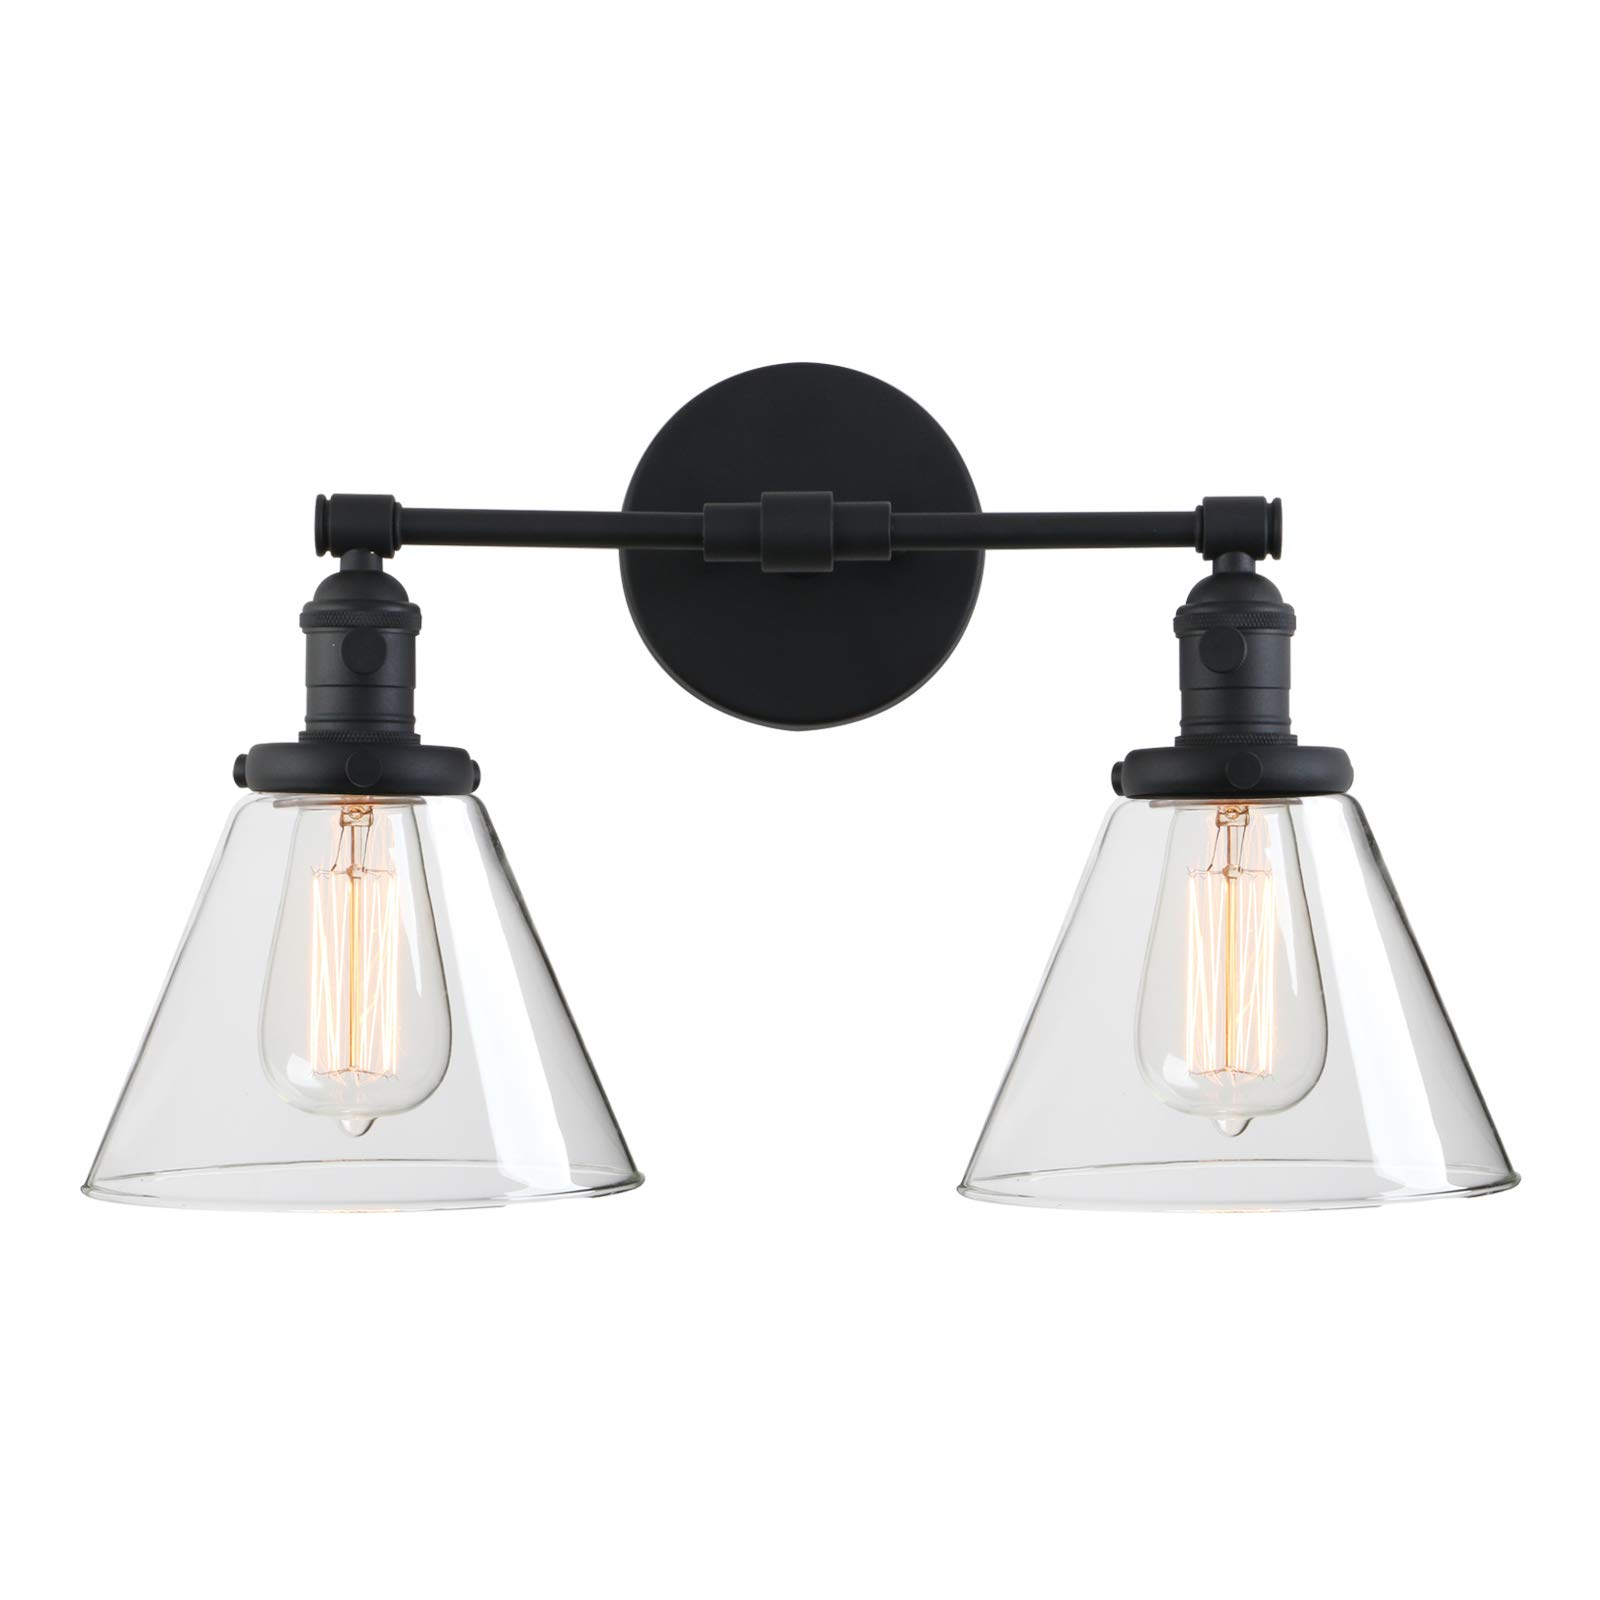 """Phansthy 2-Light Industrial Wall Light Black Wall Sconce Light Fixture with Dual 7.3"""" Cone Clear Glass Canopy(Black)"""